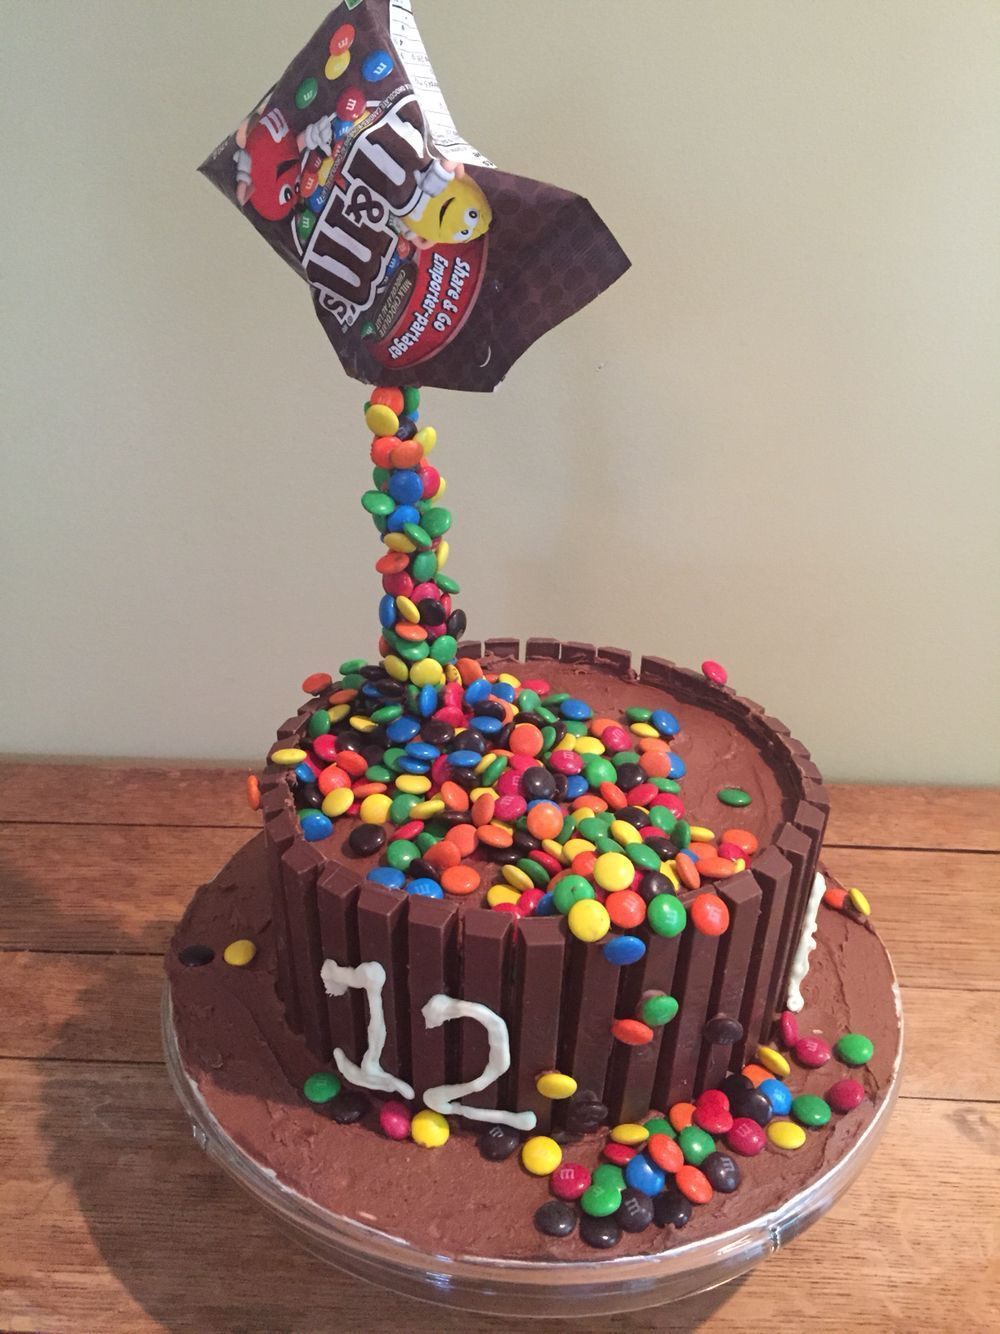 Cake made for my 12 year old a lot of fun to make but